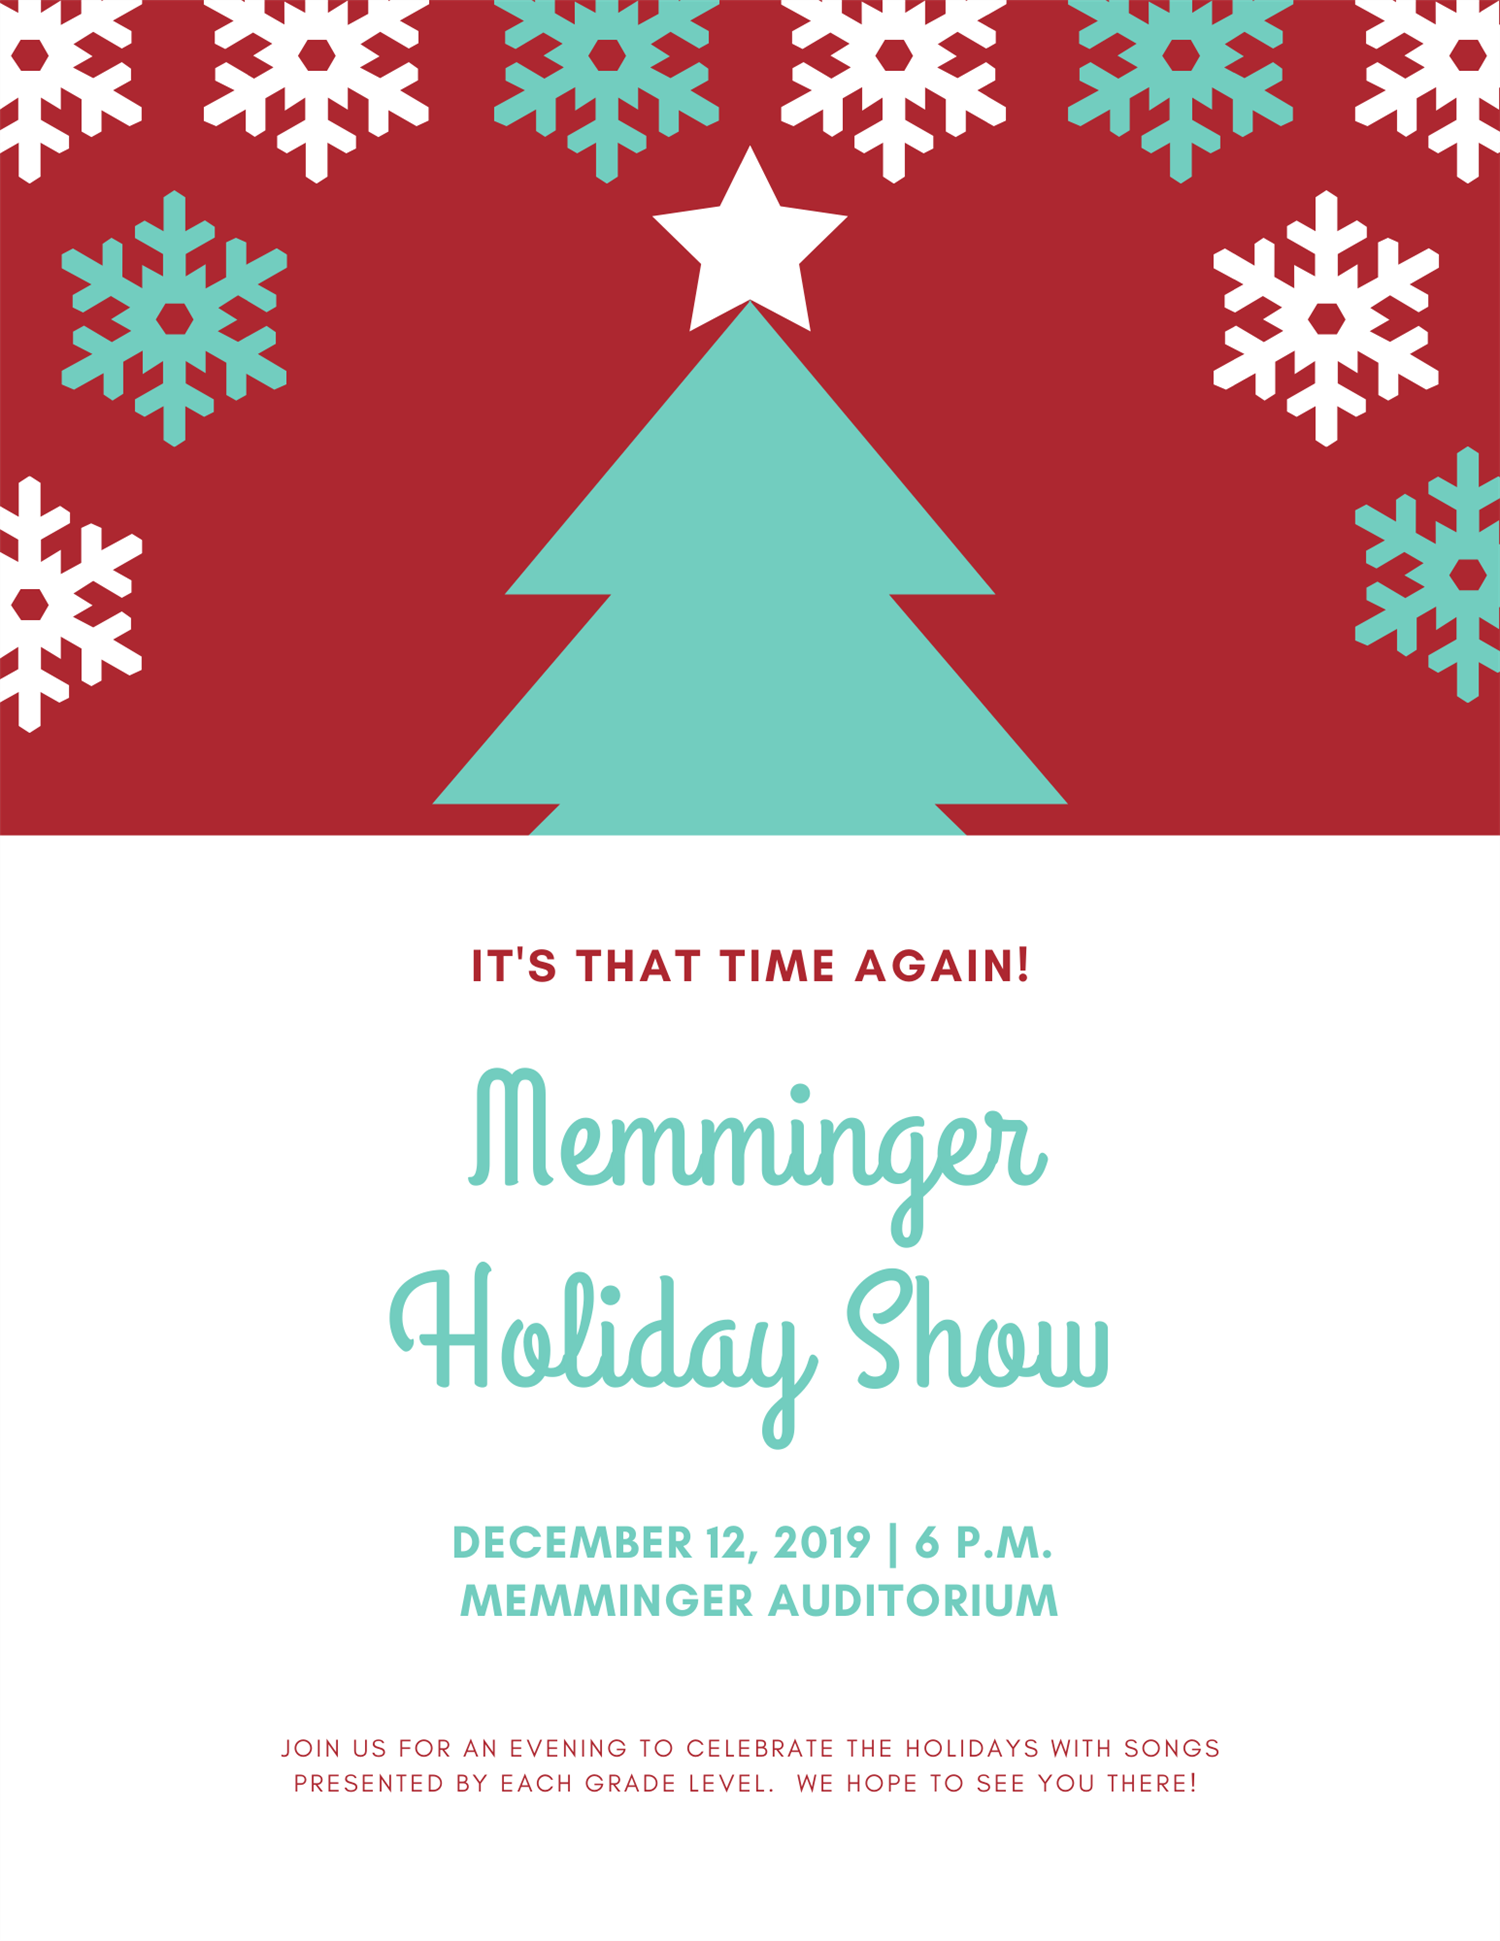 Memminger Holiday Show